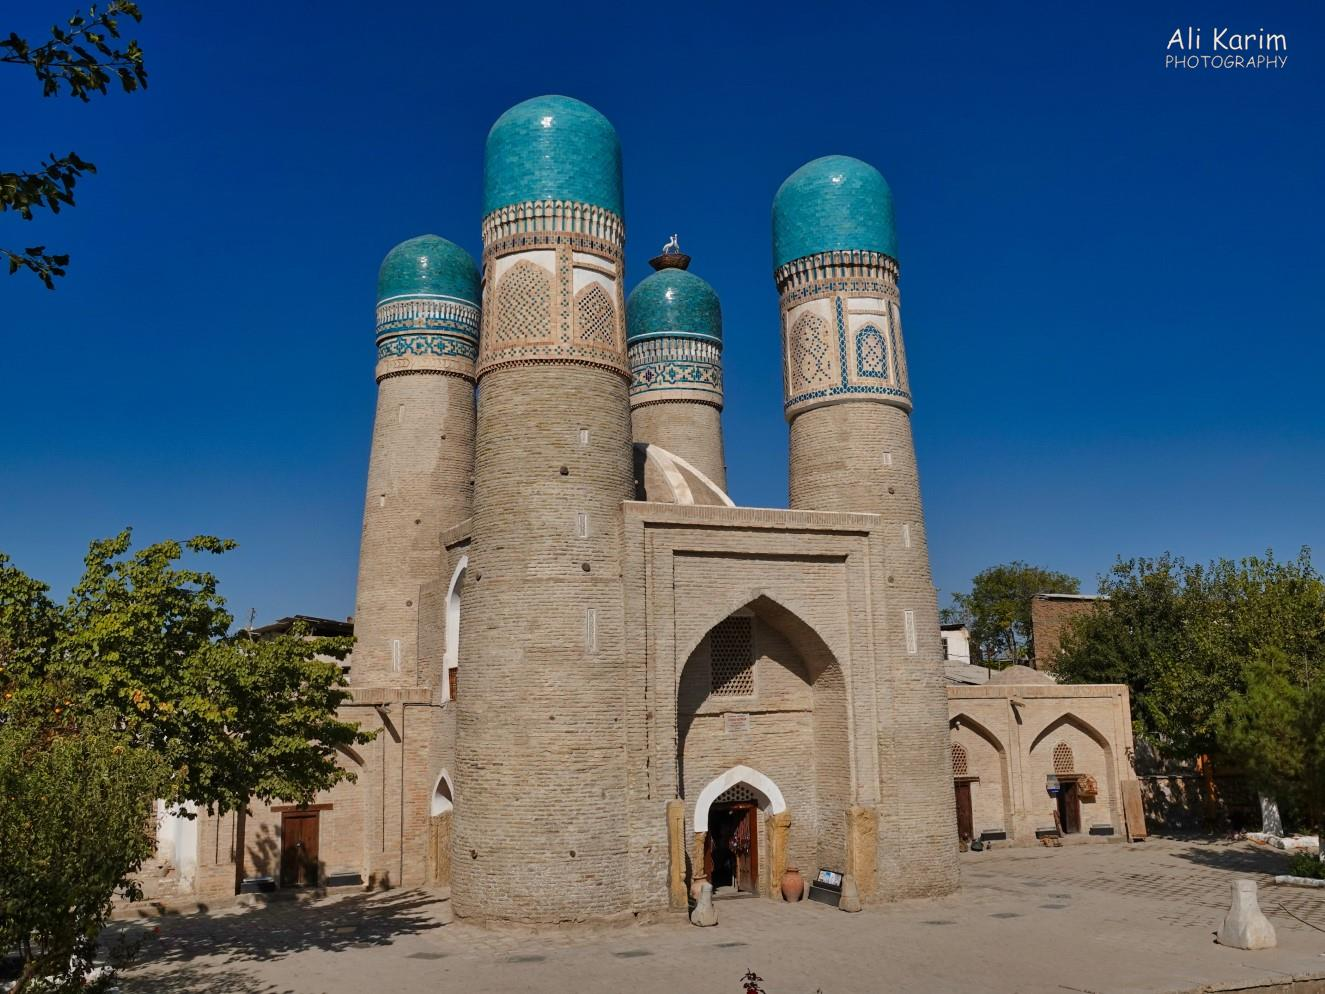 Bukhara, Oct 2019, Chor Minor ancient madrassa complex. Chor refers to the 4 minarets. Note the nesting birds on top of one minaret